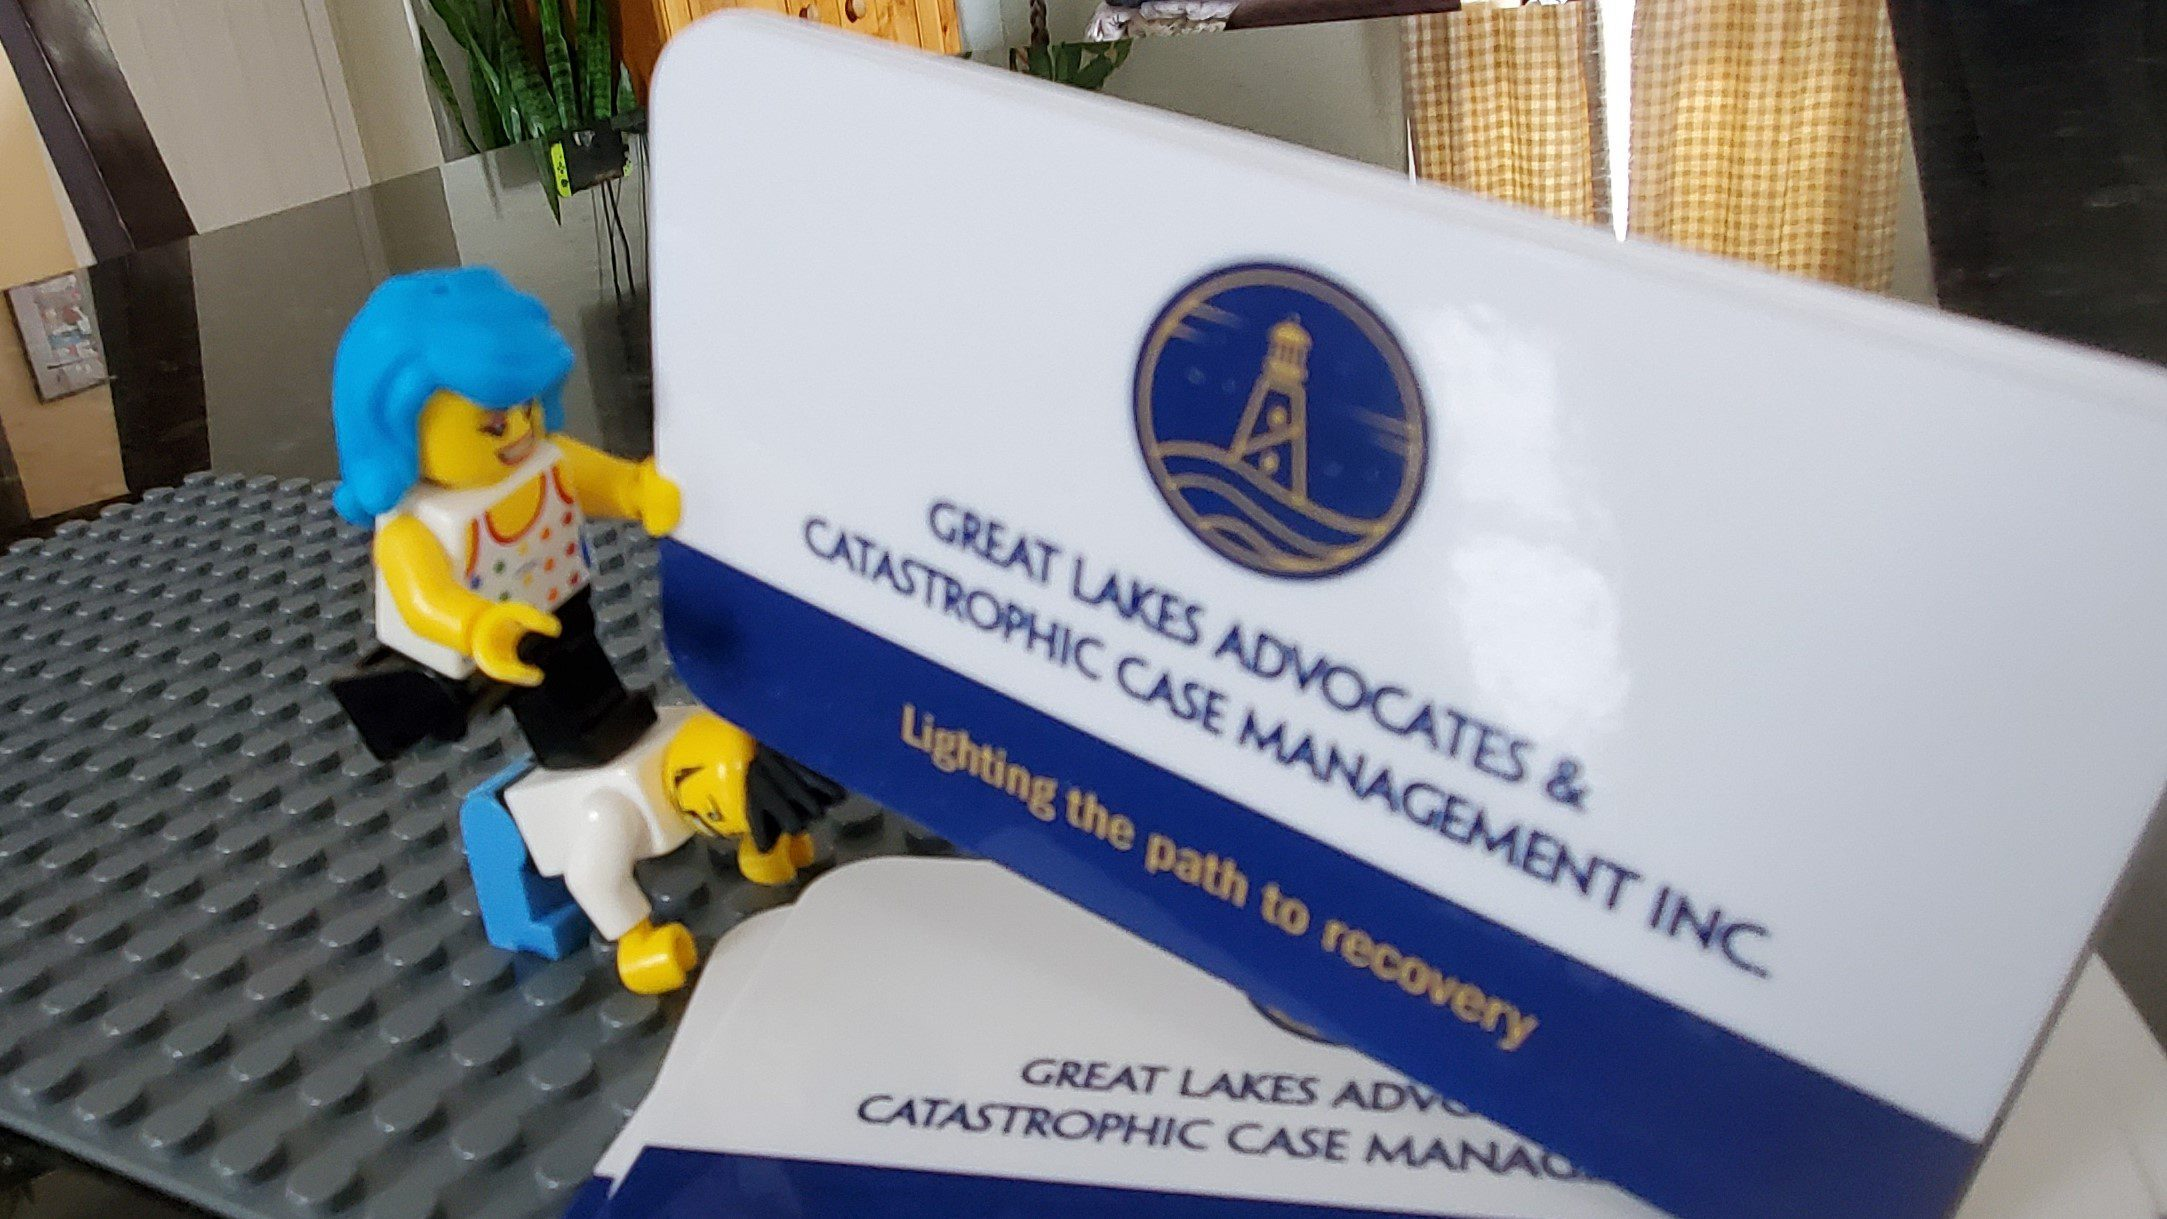 Great Lakes - Business Card Lego 05